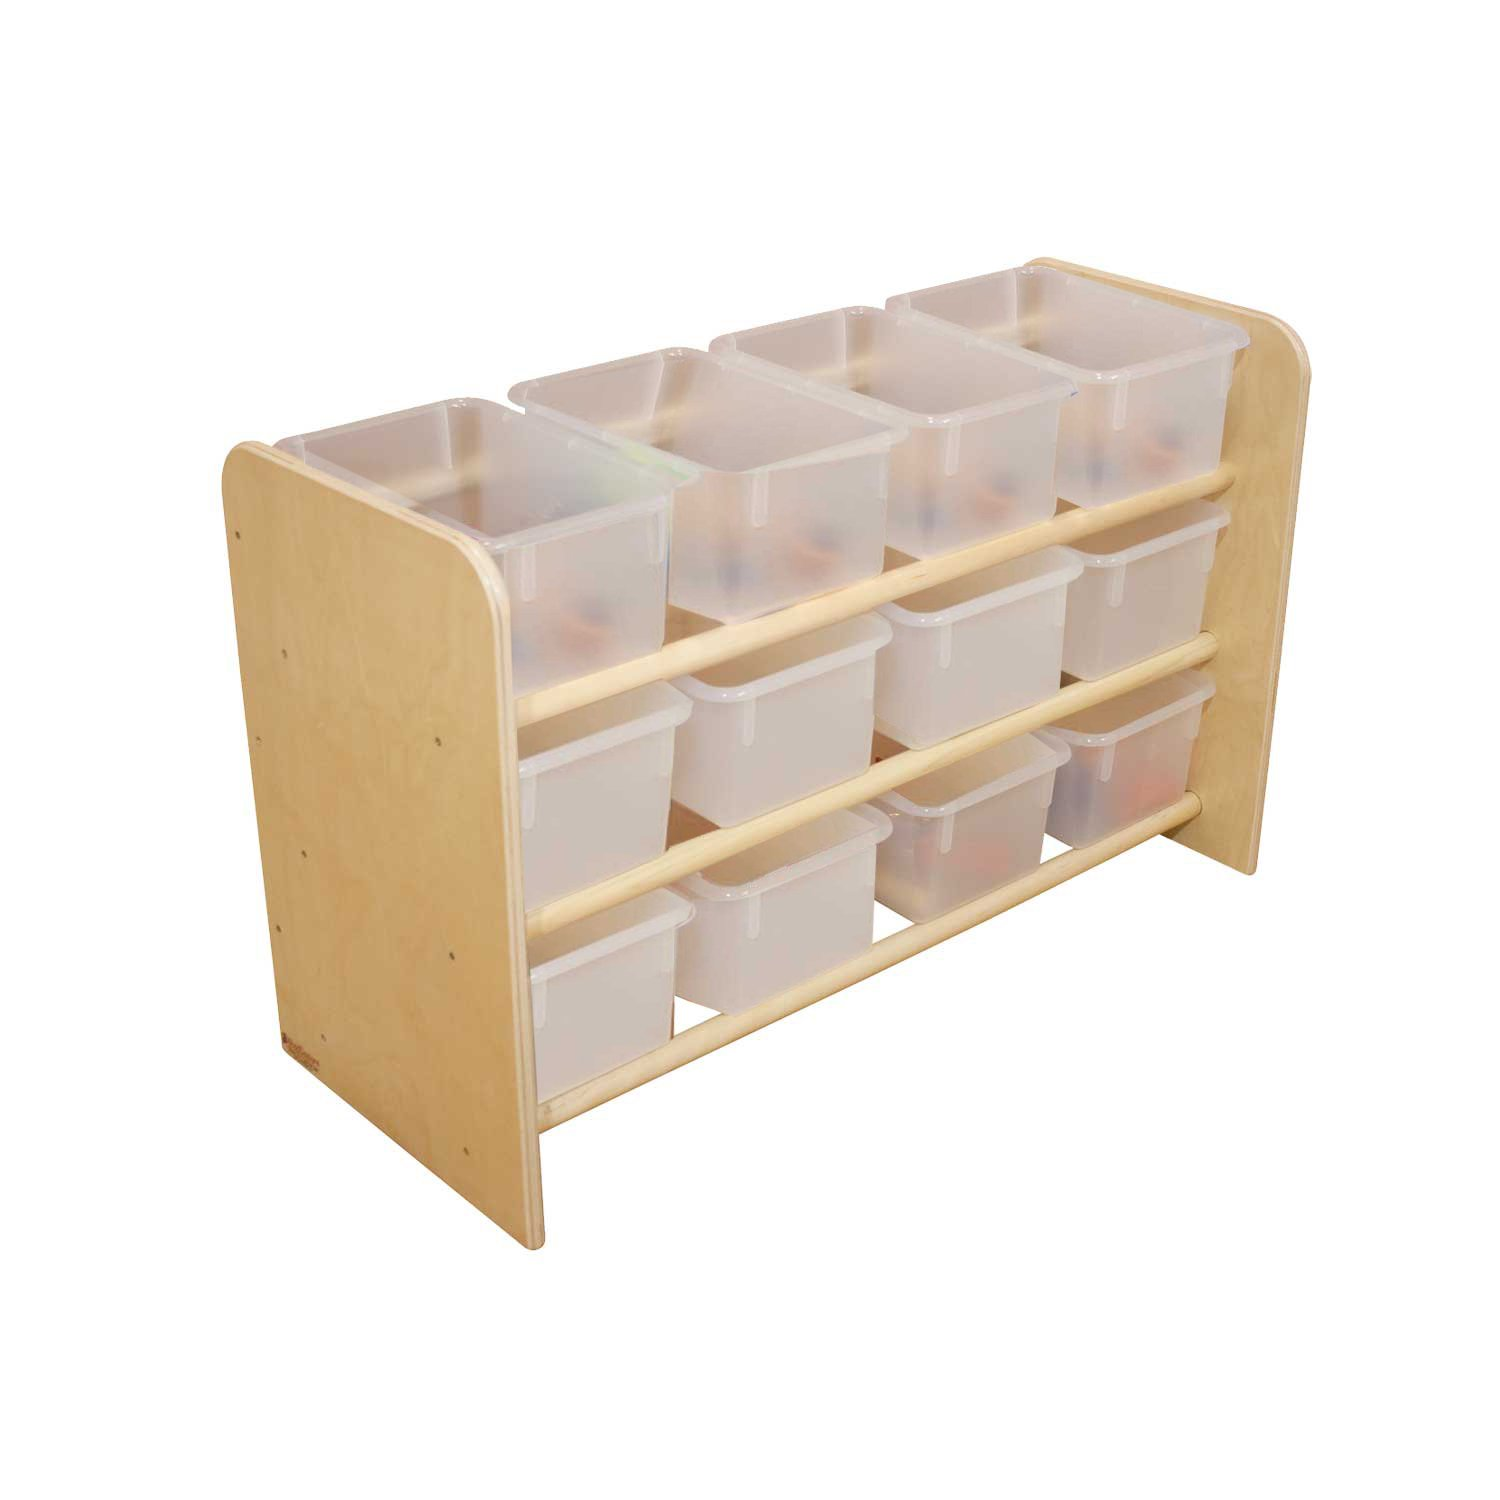 Wood Designs WD13801 See-All Storage with (12) Translucent Trays, 21 x 33 x 14'' (H x W x D)